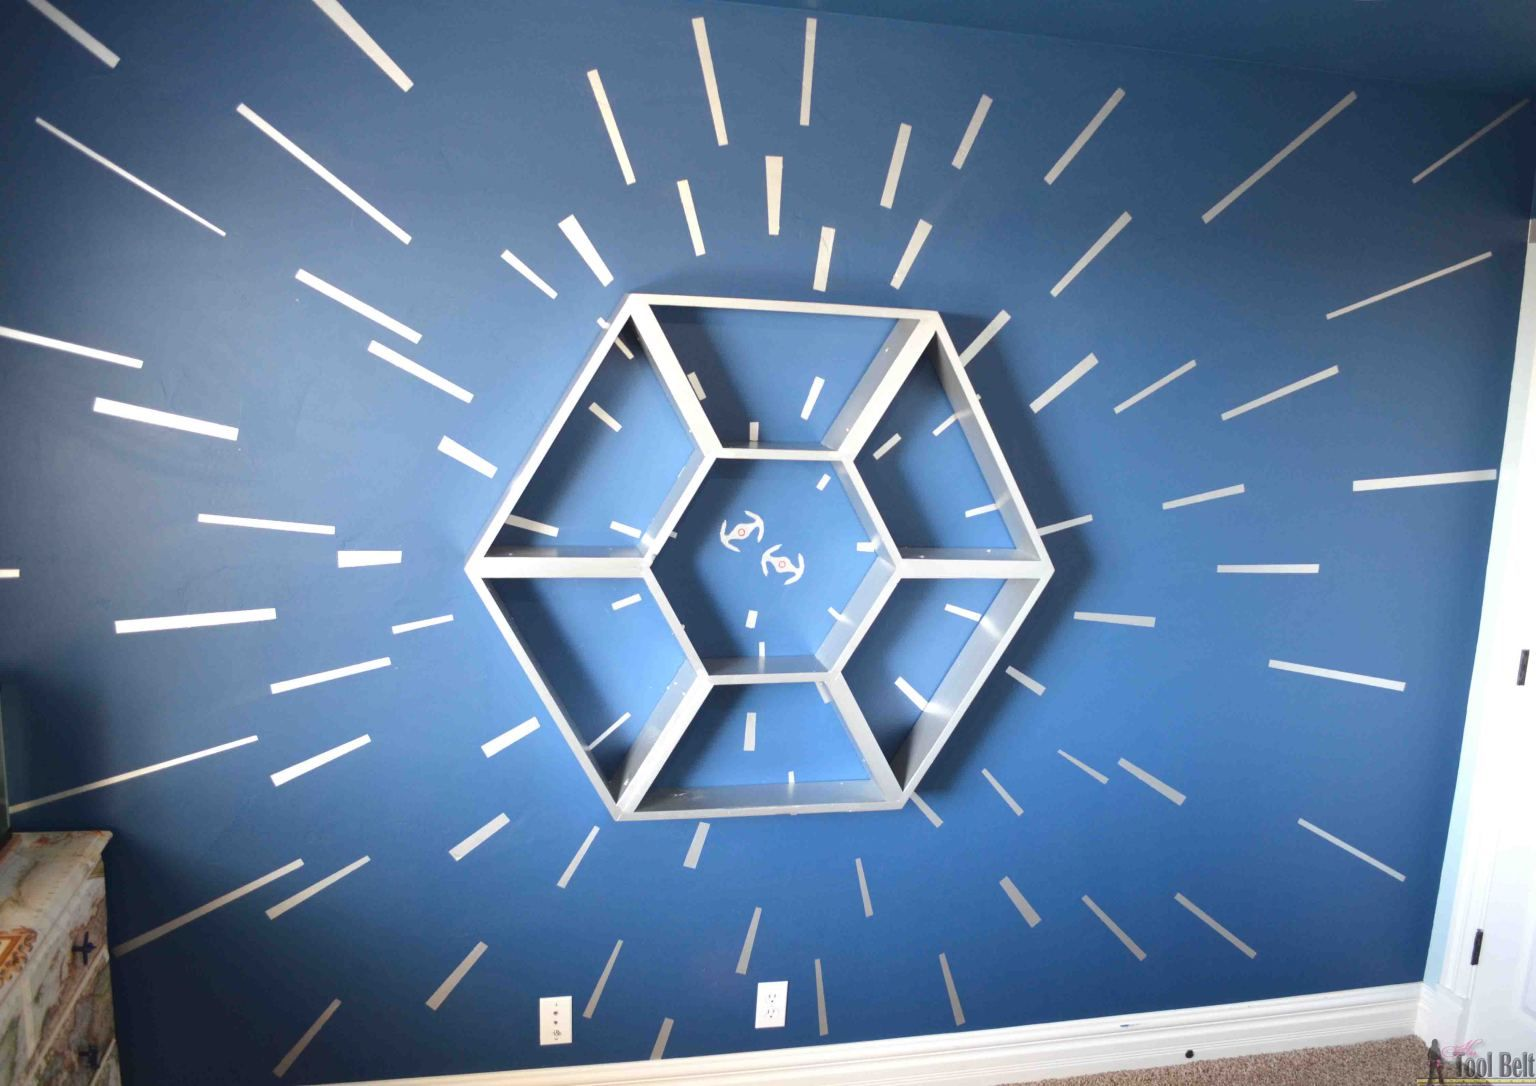 Star Wars Shelf and Hyperspace Wall | Walls | Modern ...